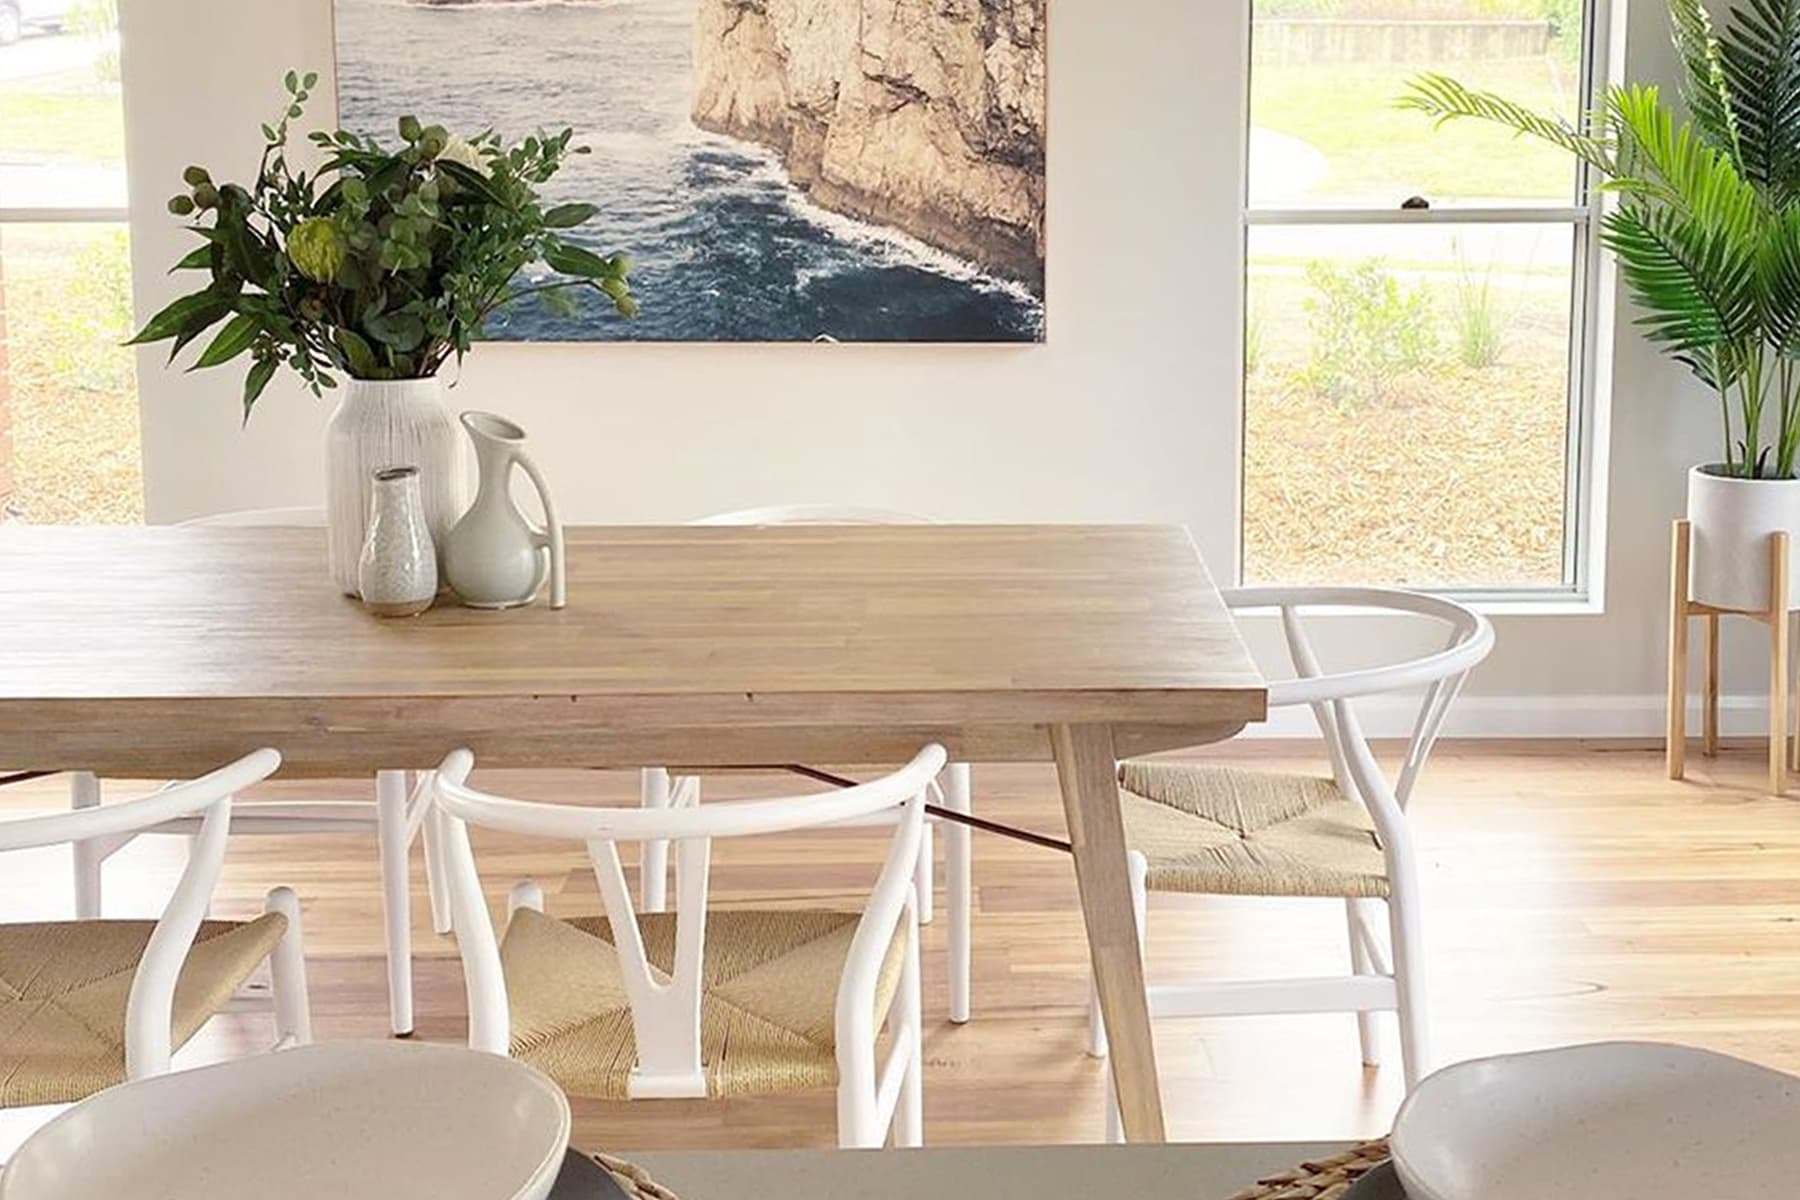 Bright coastal home with dining table and chairs